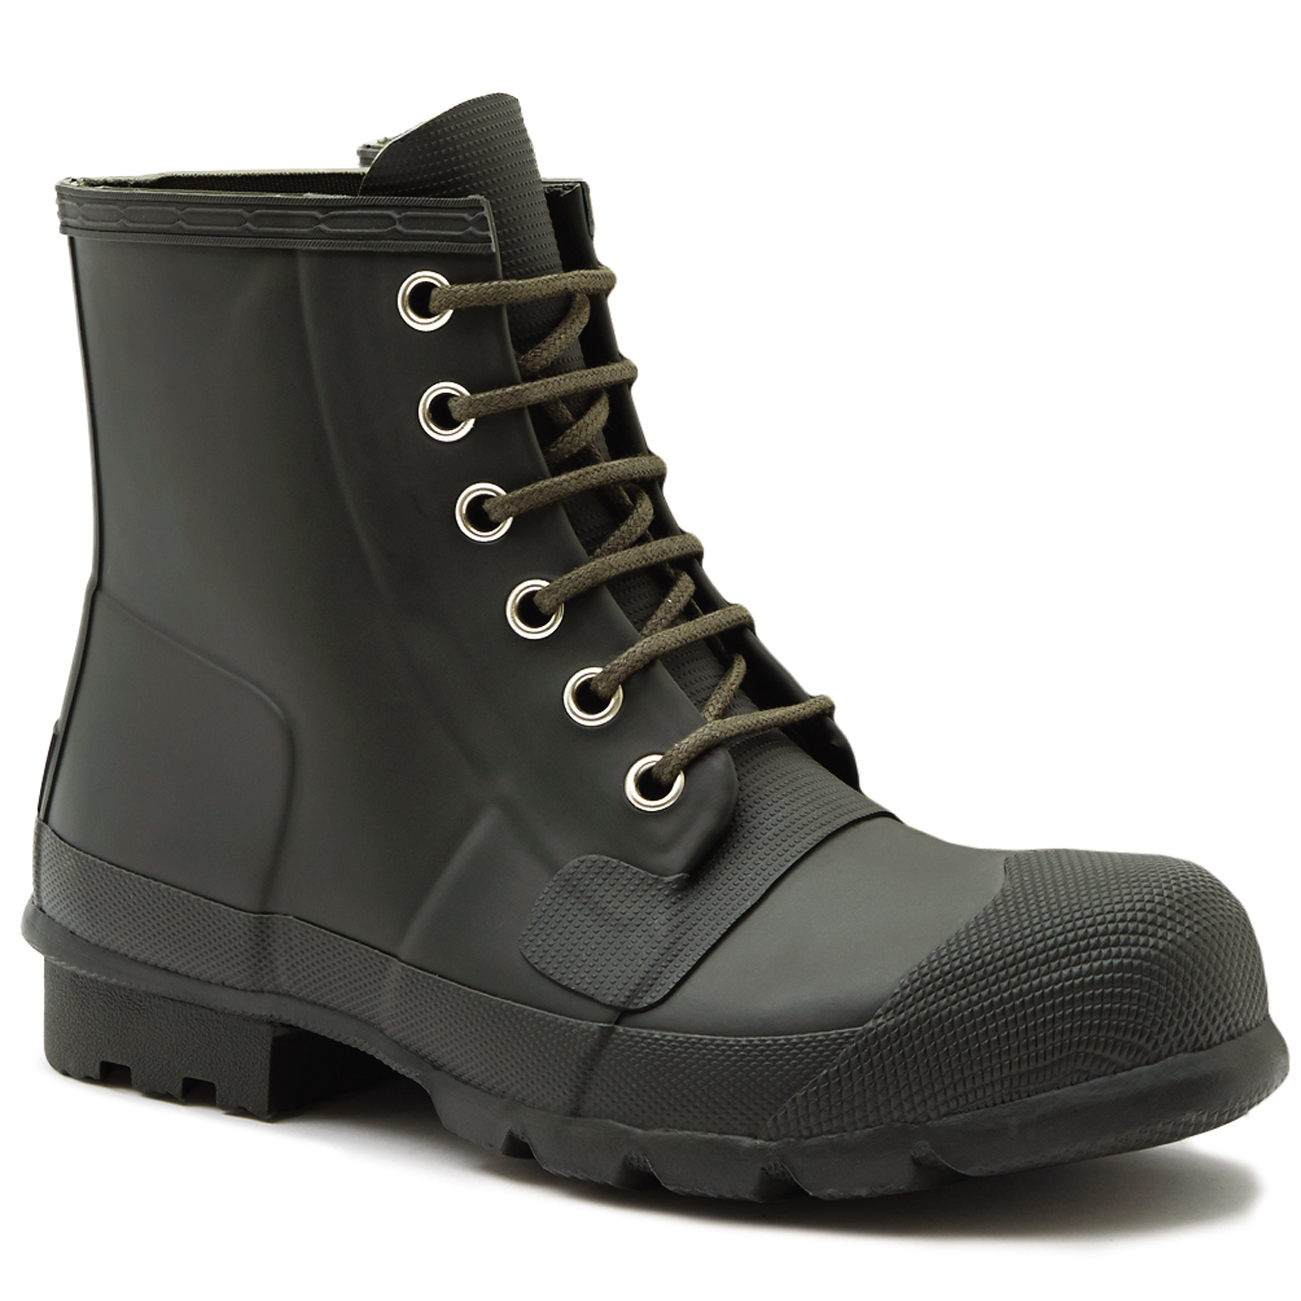 Mens Hunter Original Lace Up Rubber Snow Winter Waterproof Ankle Boots US 7-13 | eBay